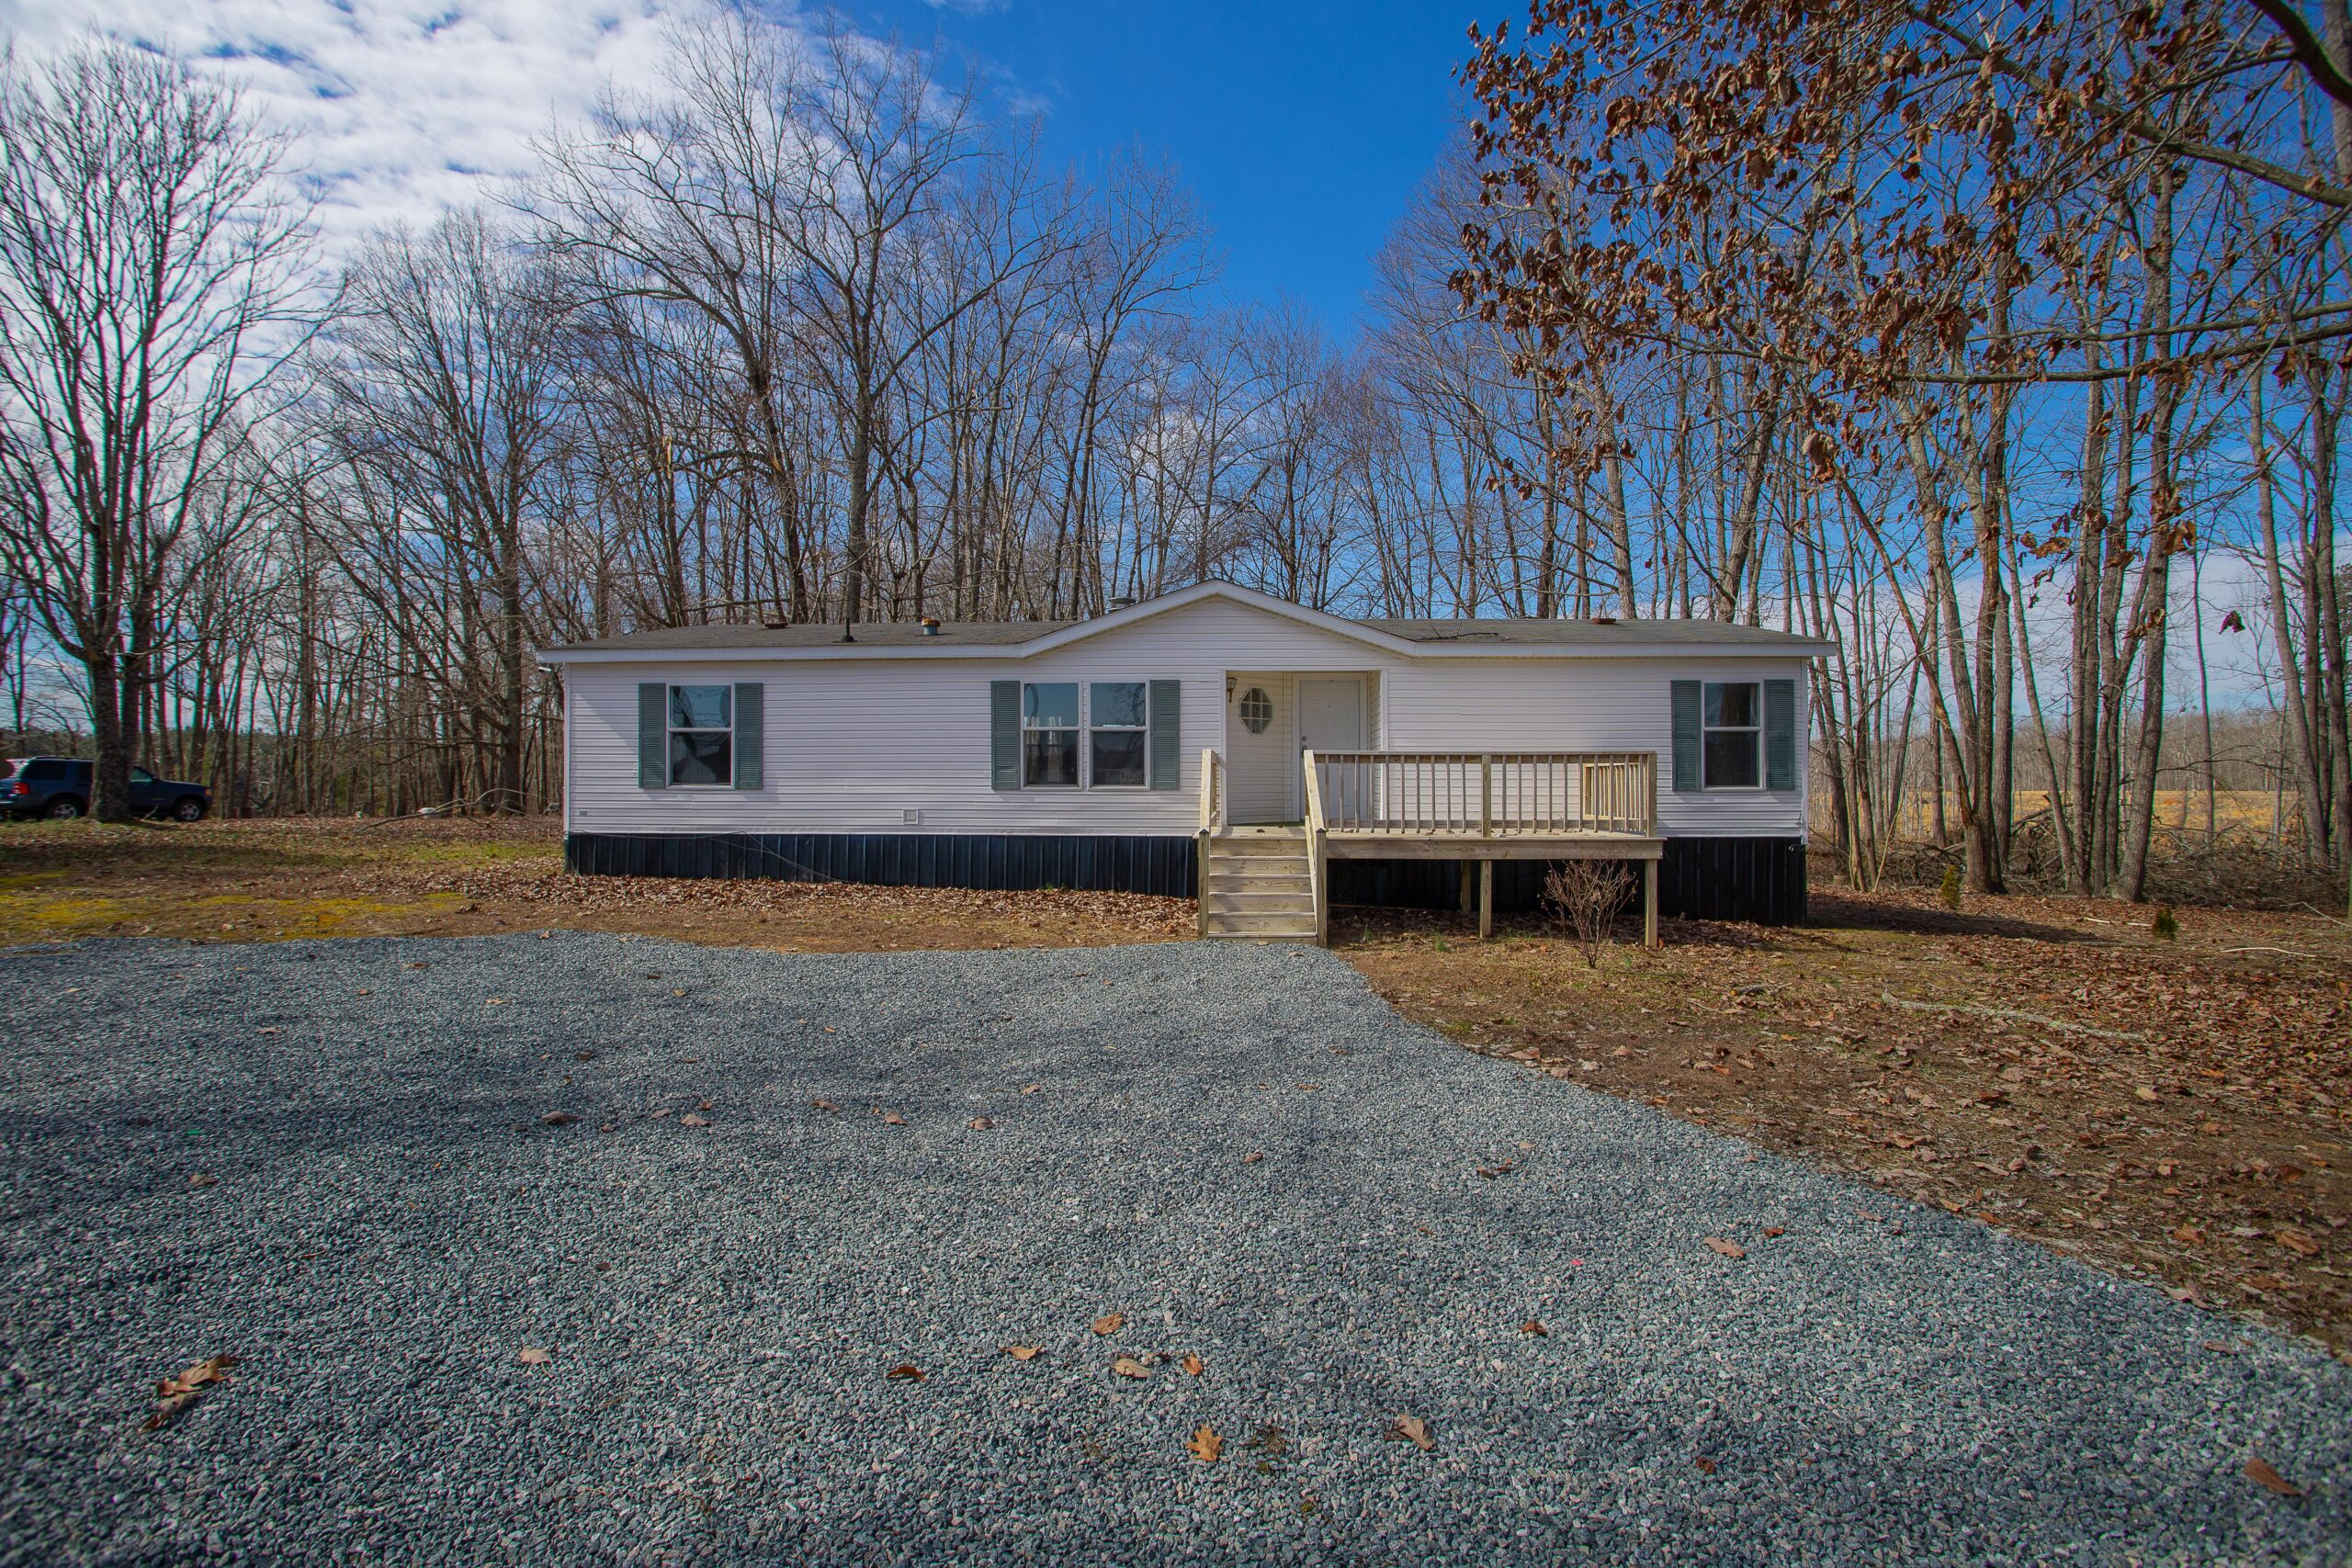 Home for Sale in Halifax County! 1156 Wilson Memorial Trail